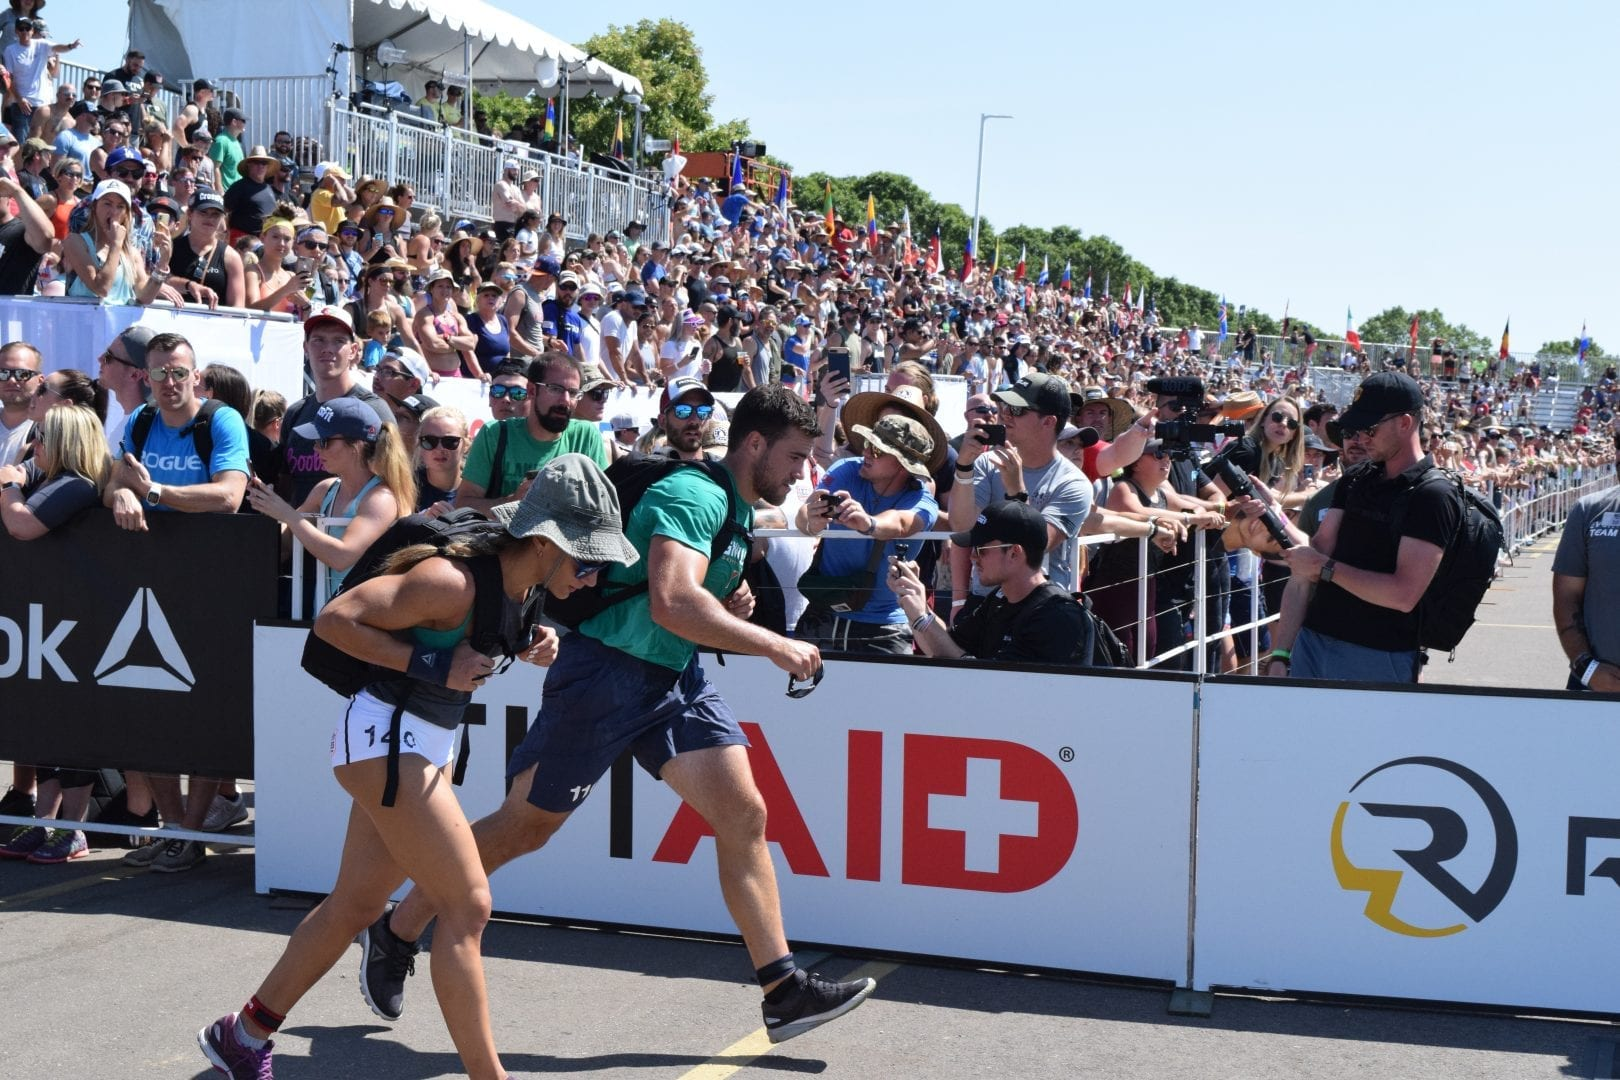 Alex Vigneault of Canada completes the Ruck Run event at the 2019 CrossFit Games